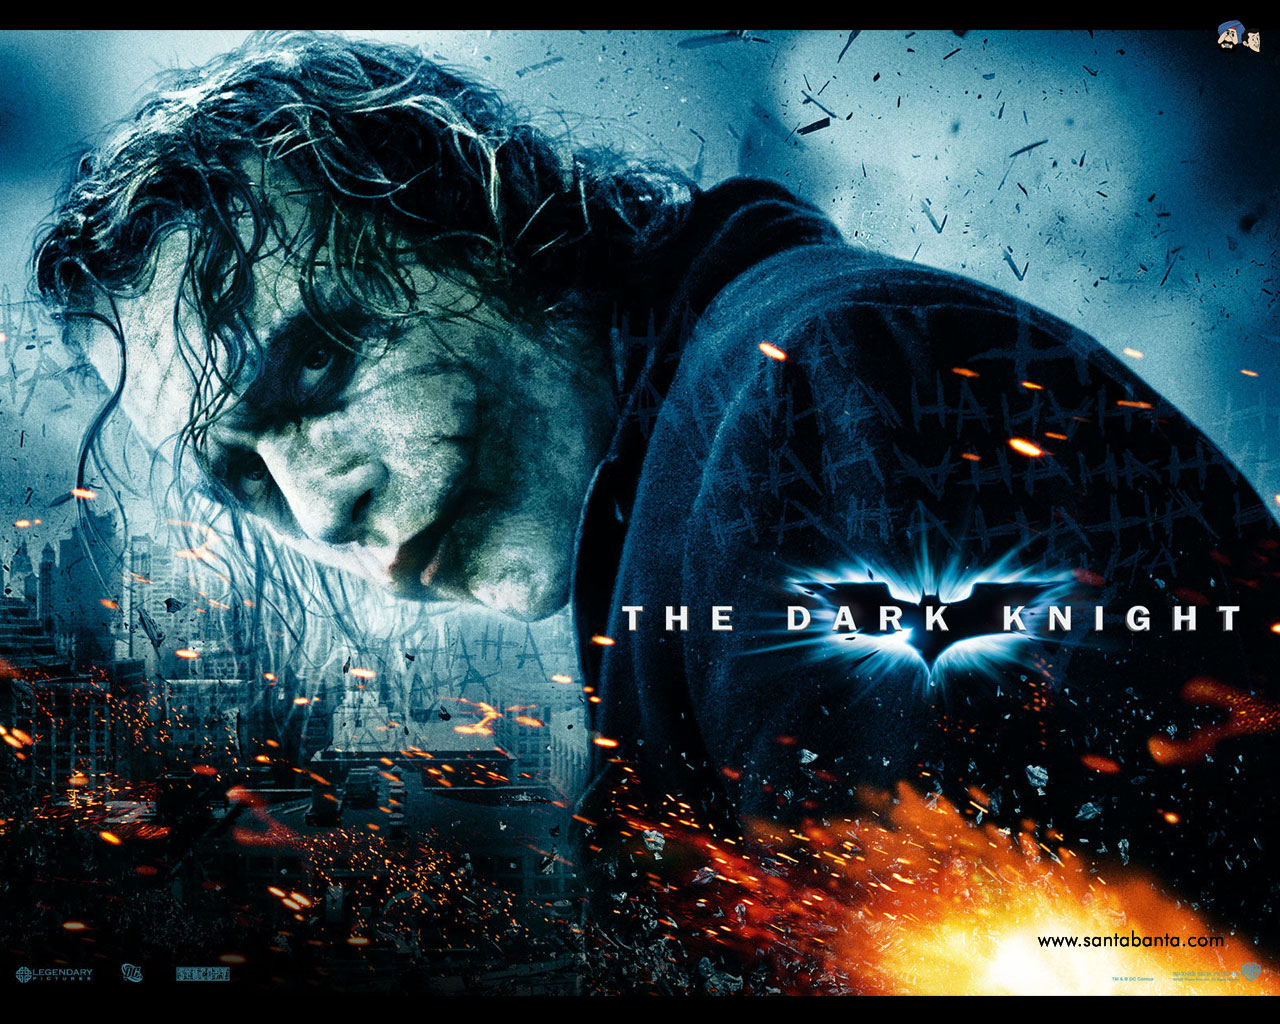 Beautiful Wallpapers: Hollywood Movies Wallpapershollywood movies wallpapers